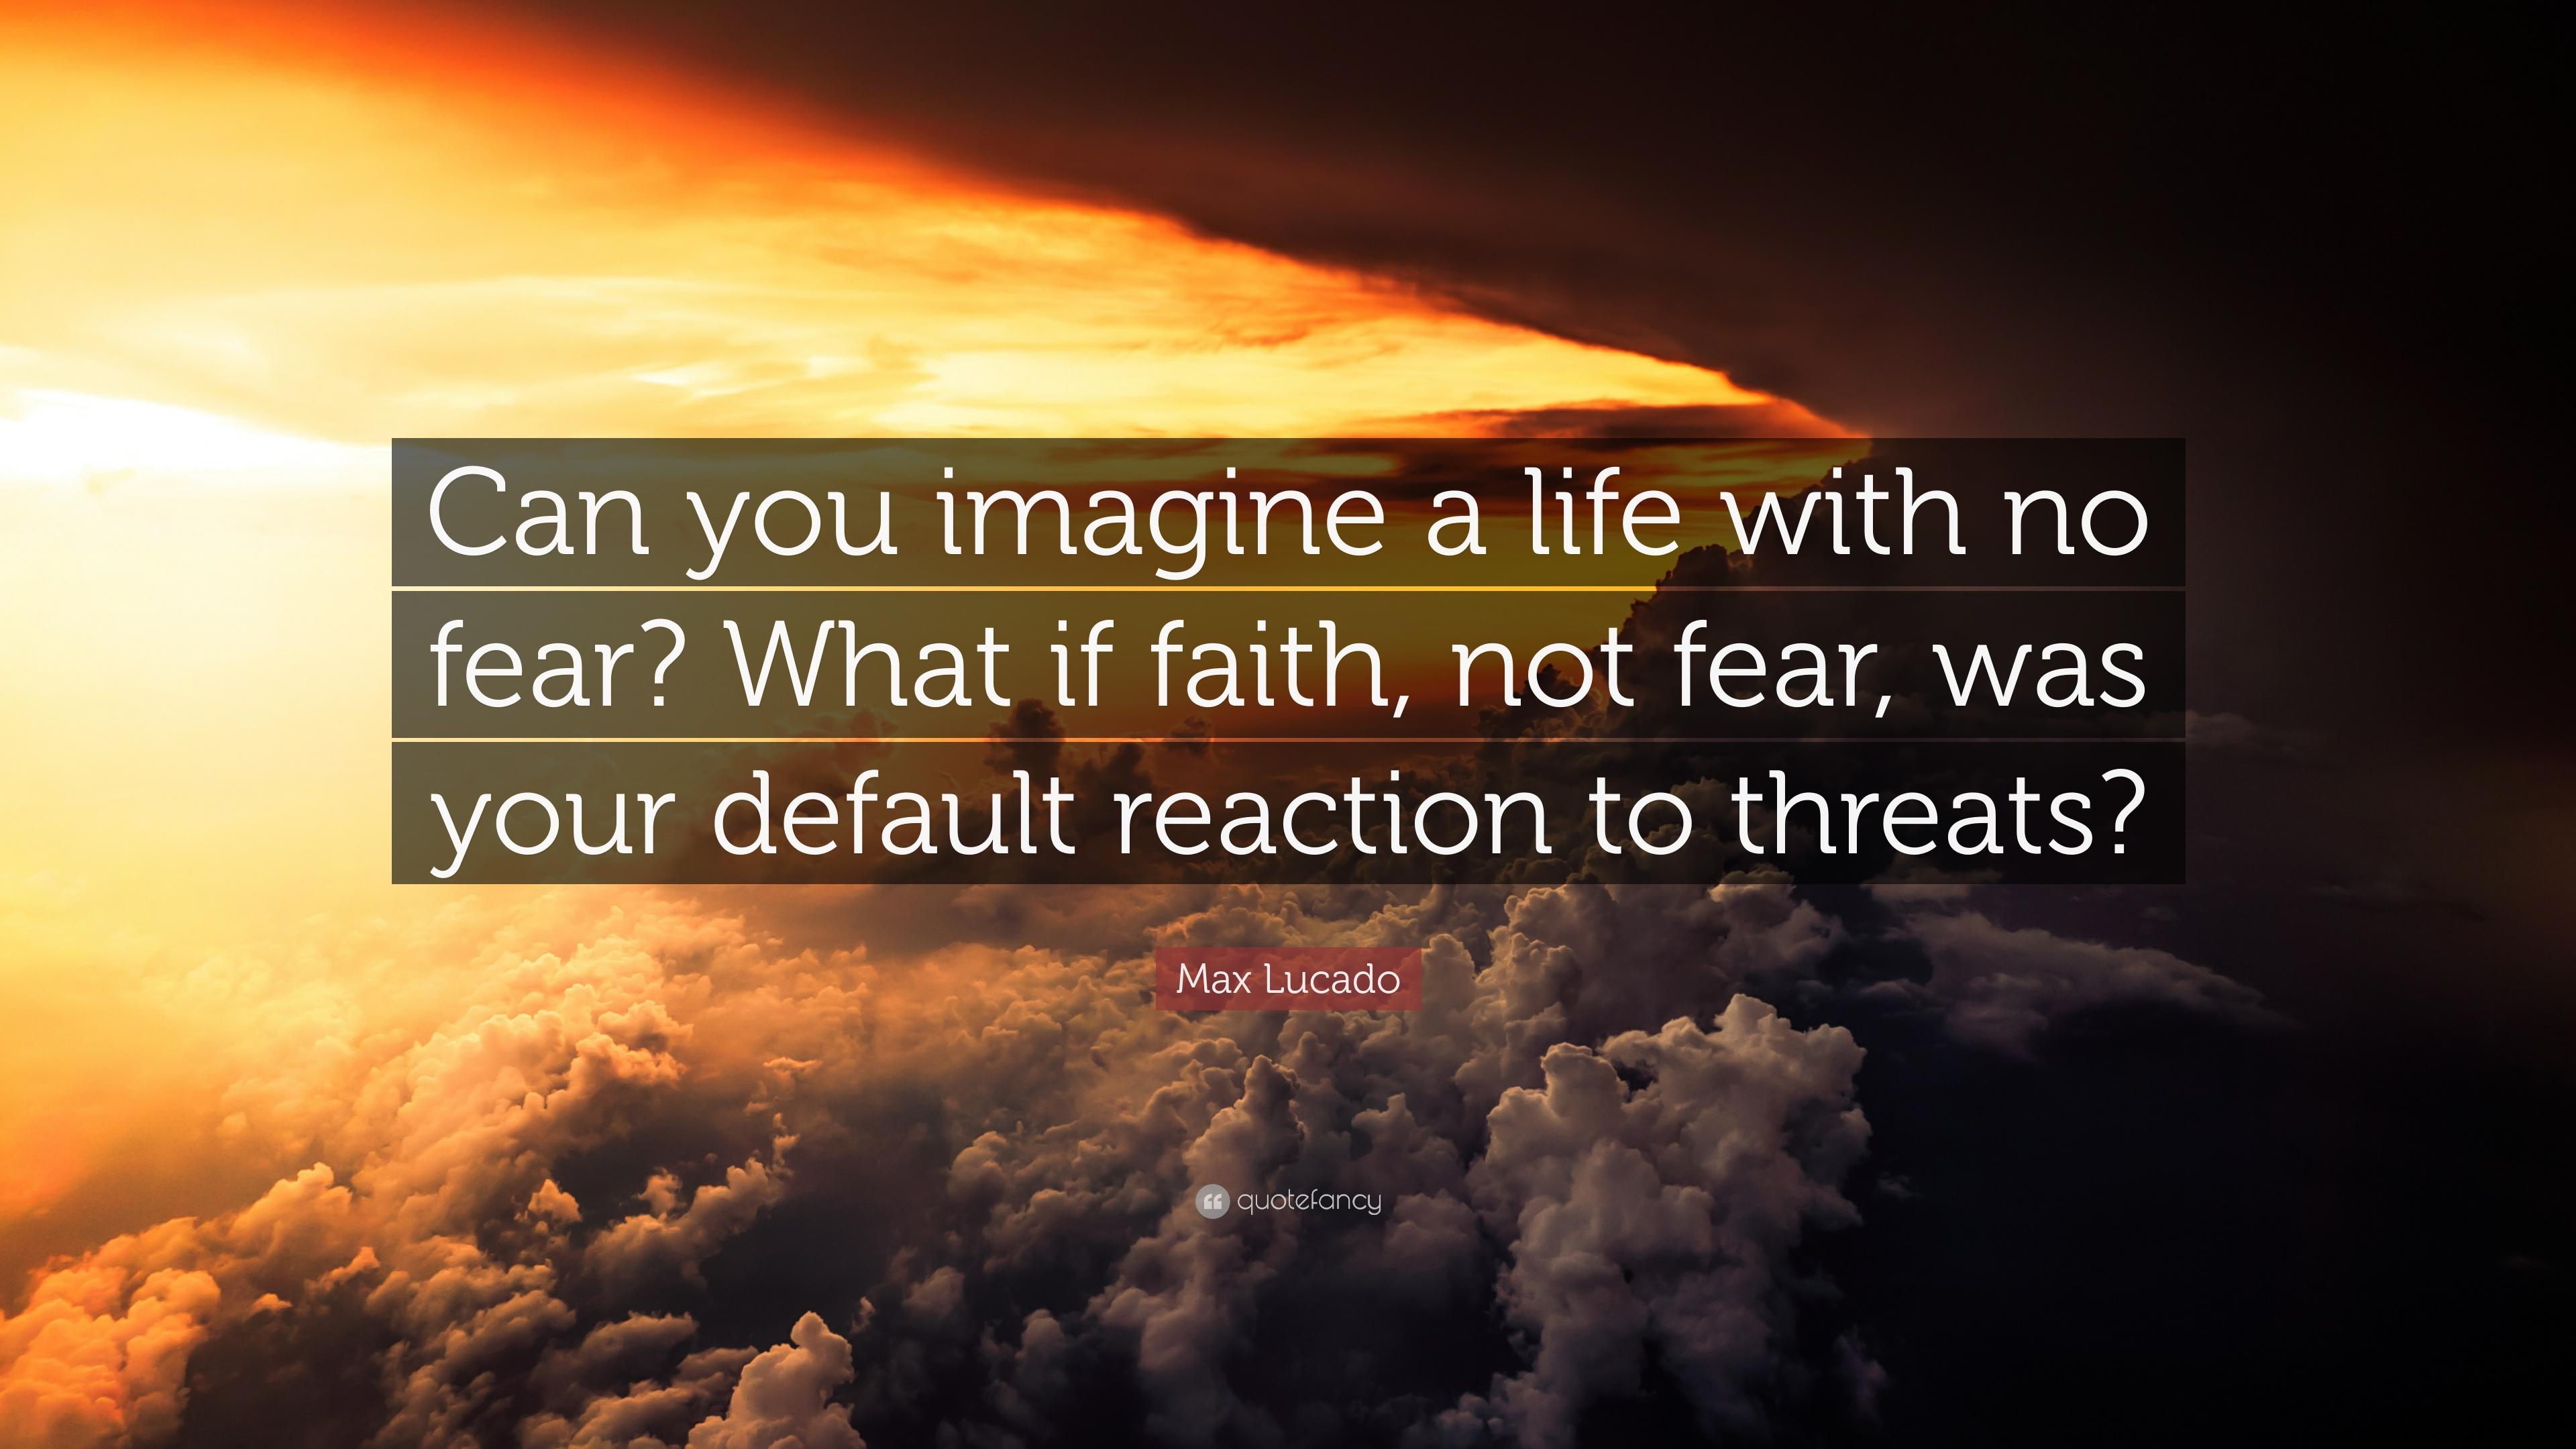 Inspiring Relationship Quotes Wallpaper Max Lucado Quote Can You Imagine A Life With No Fear